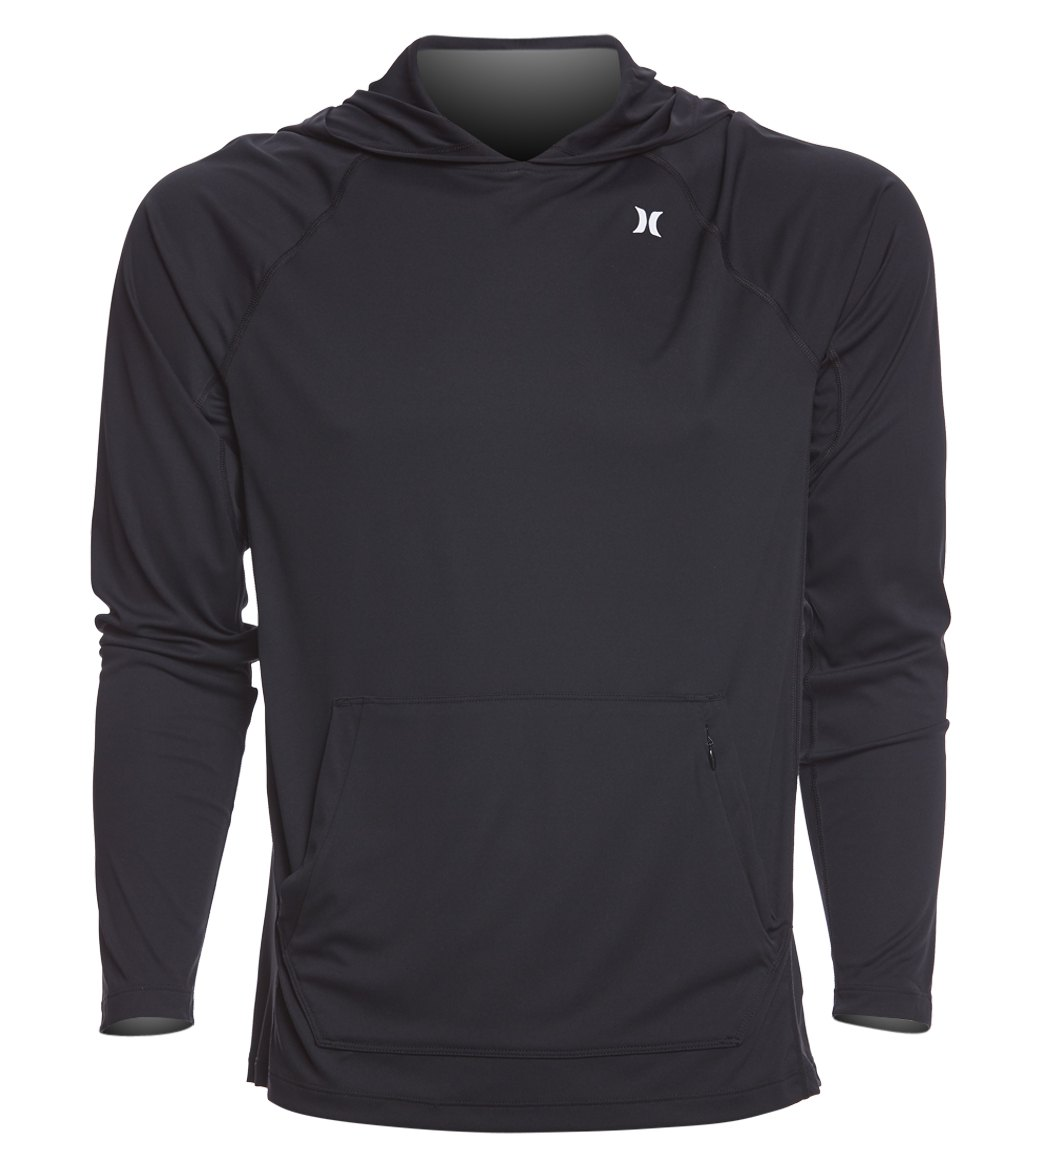 Hurley Men's Wet/Dry Icon Hooded Long Sleeve Surf Shirt at SwimOutlet.com -  Free Shipping